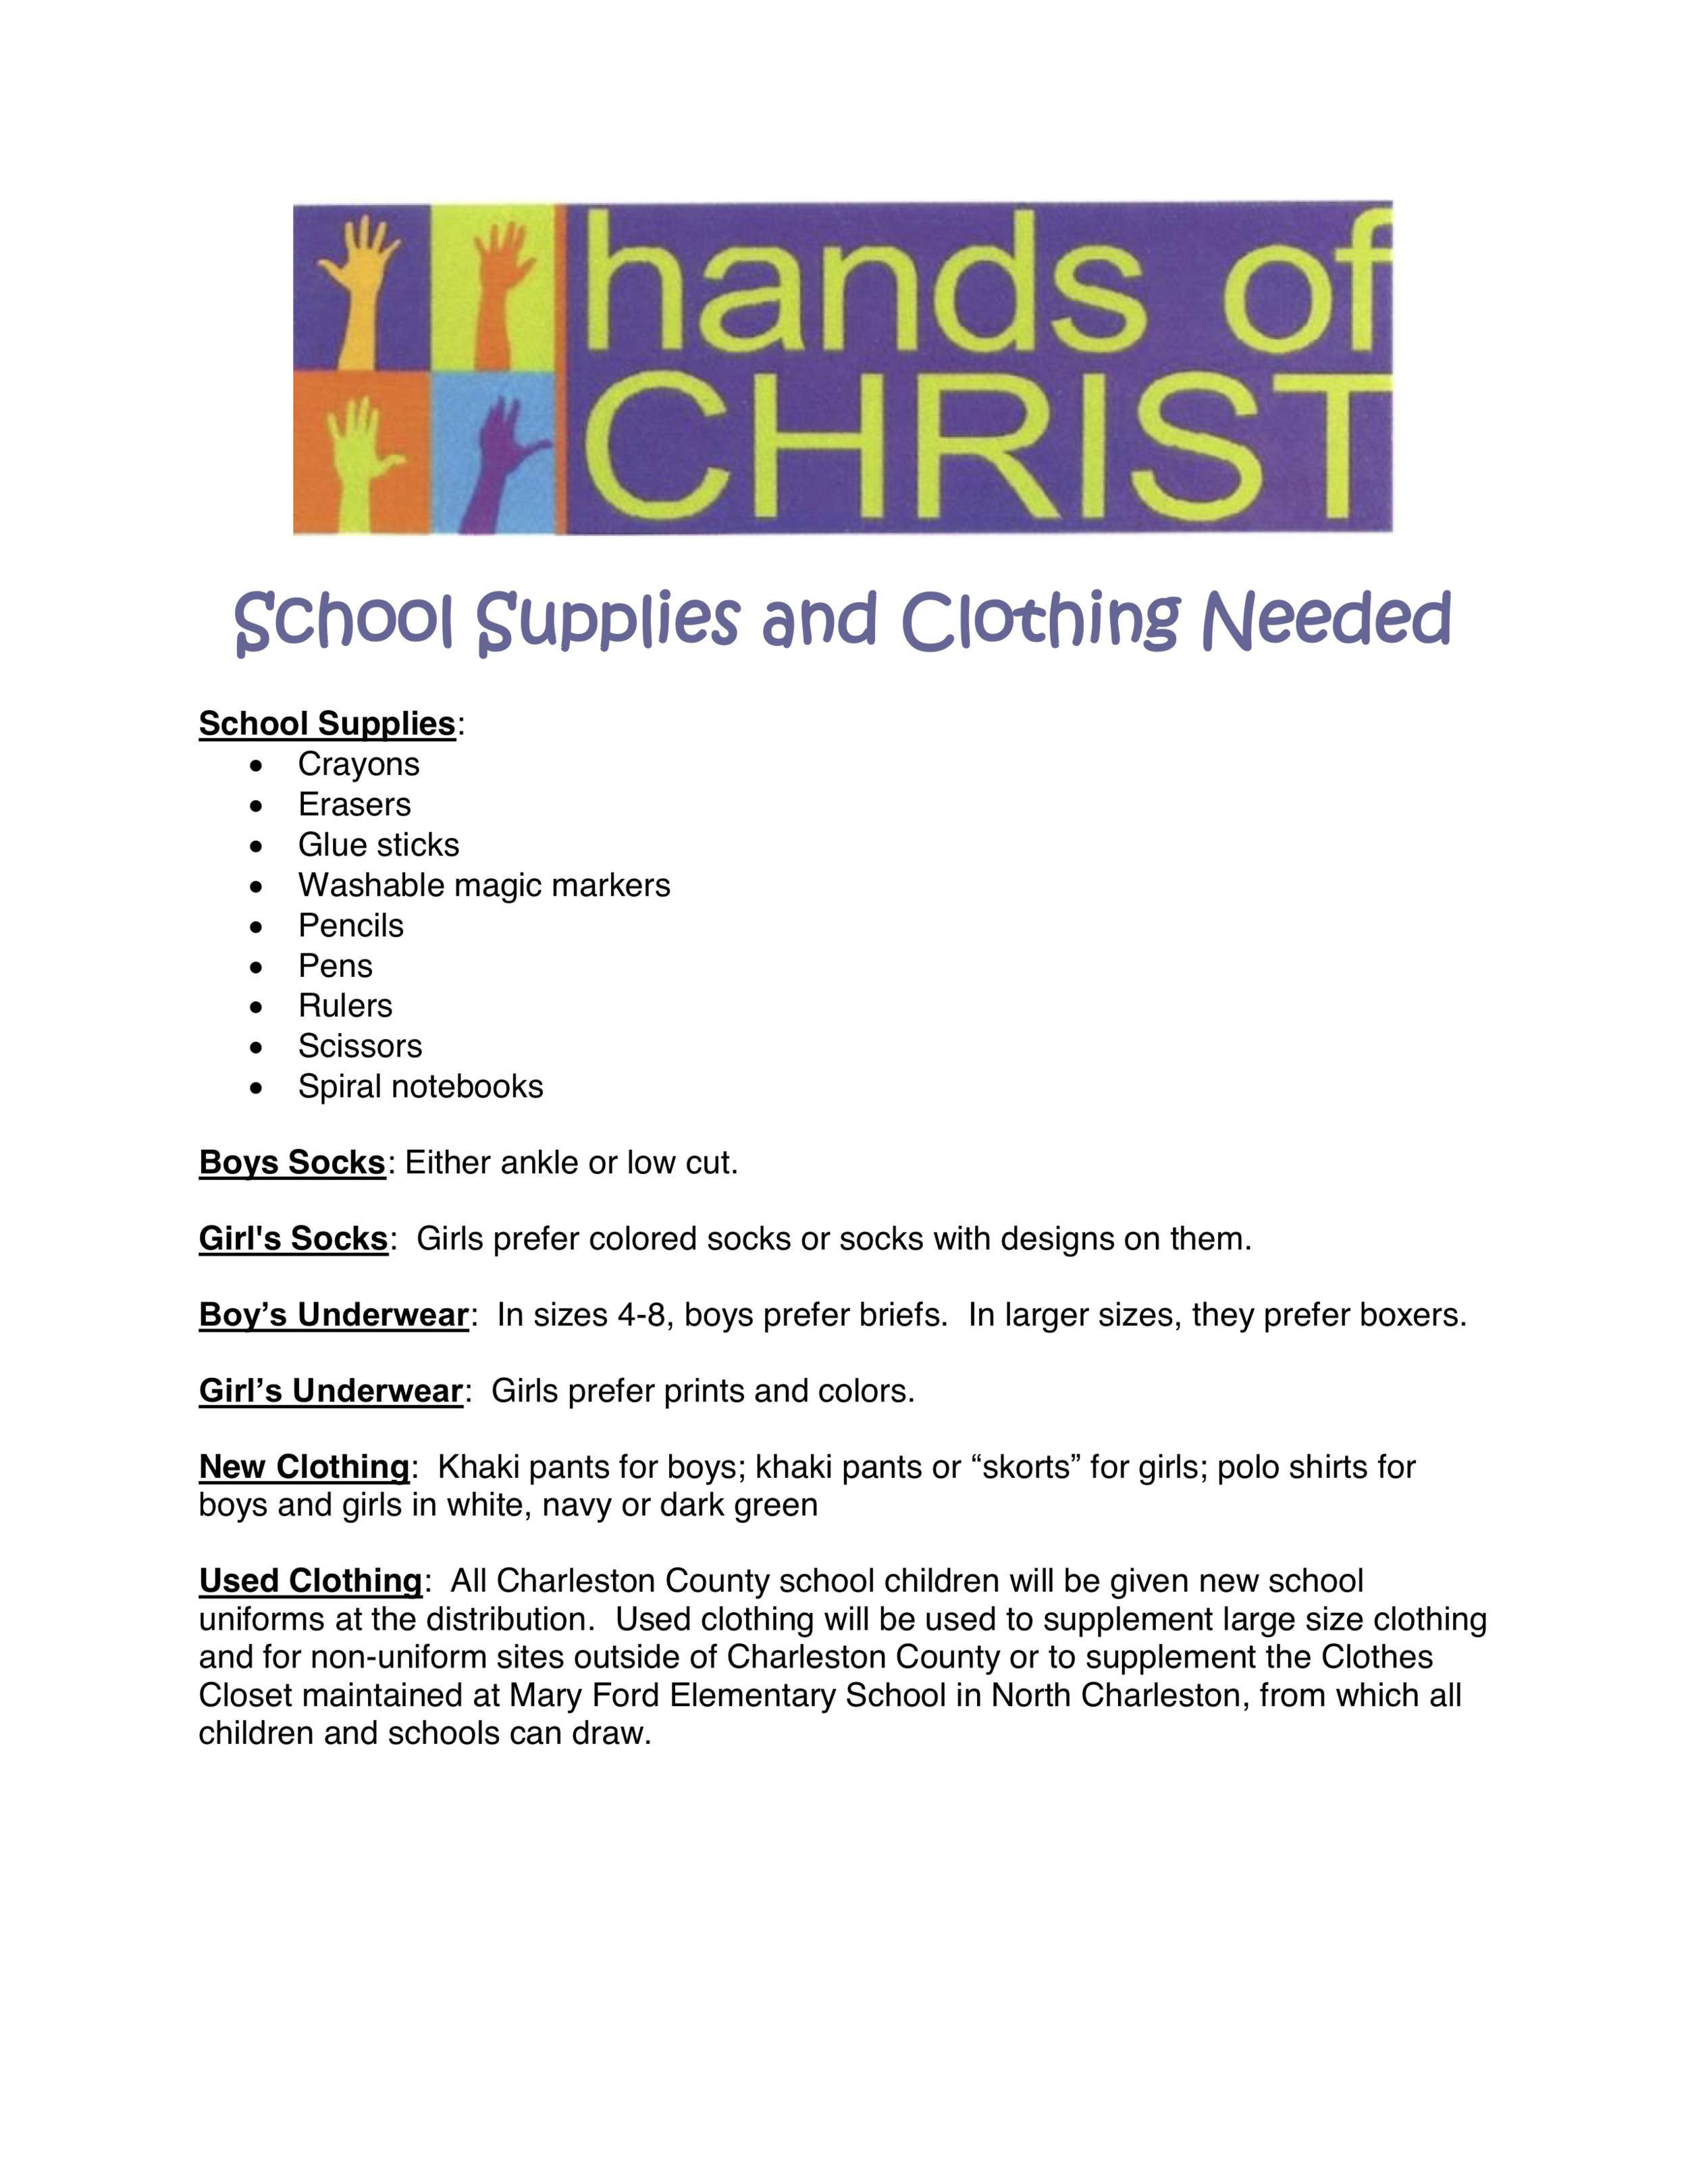 School Supplies and Clothing Needed 2019 copy.png